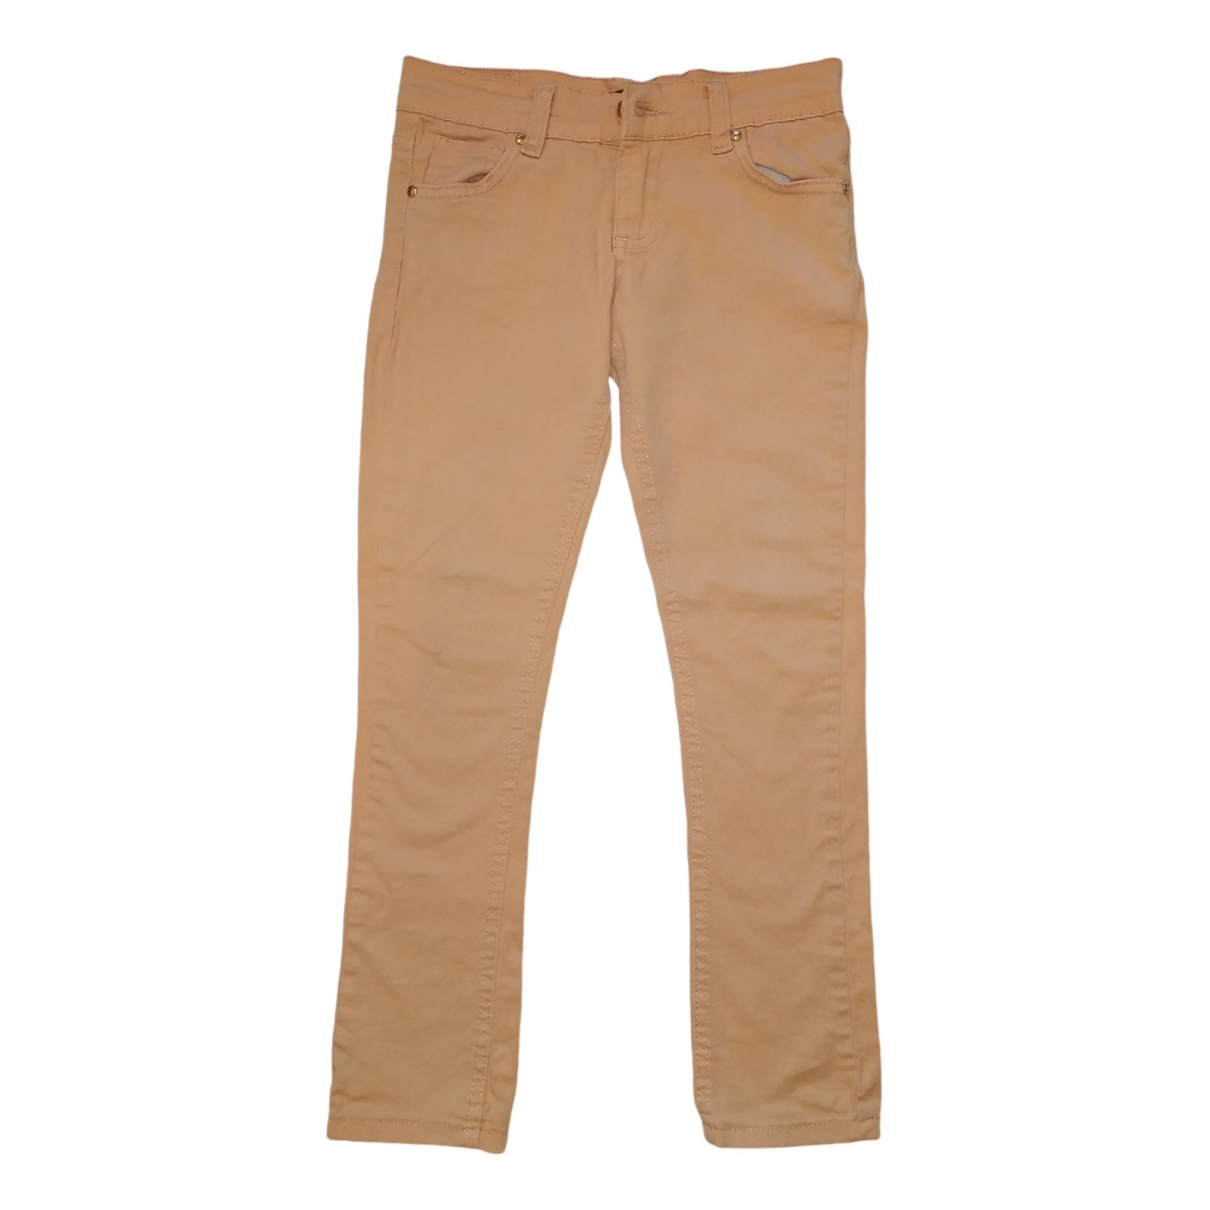 Gucci \N Cotton Trousers for Kids 8 years - up to 128cm FR